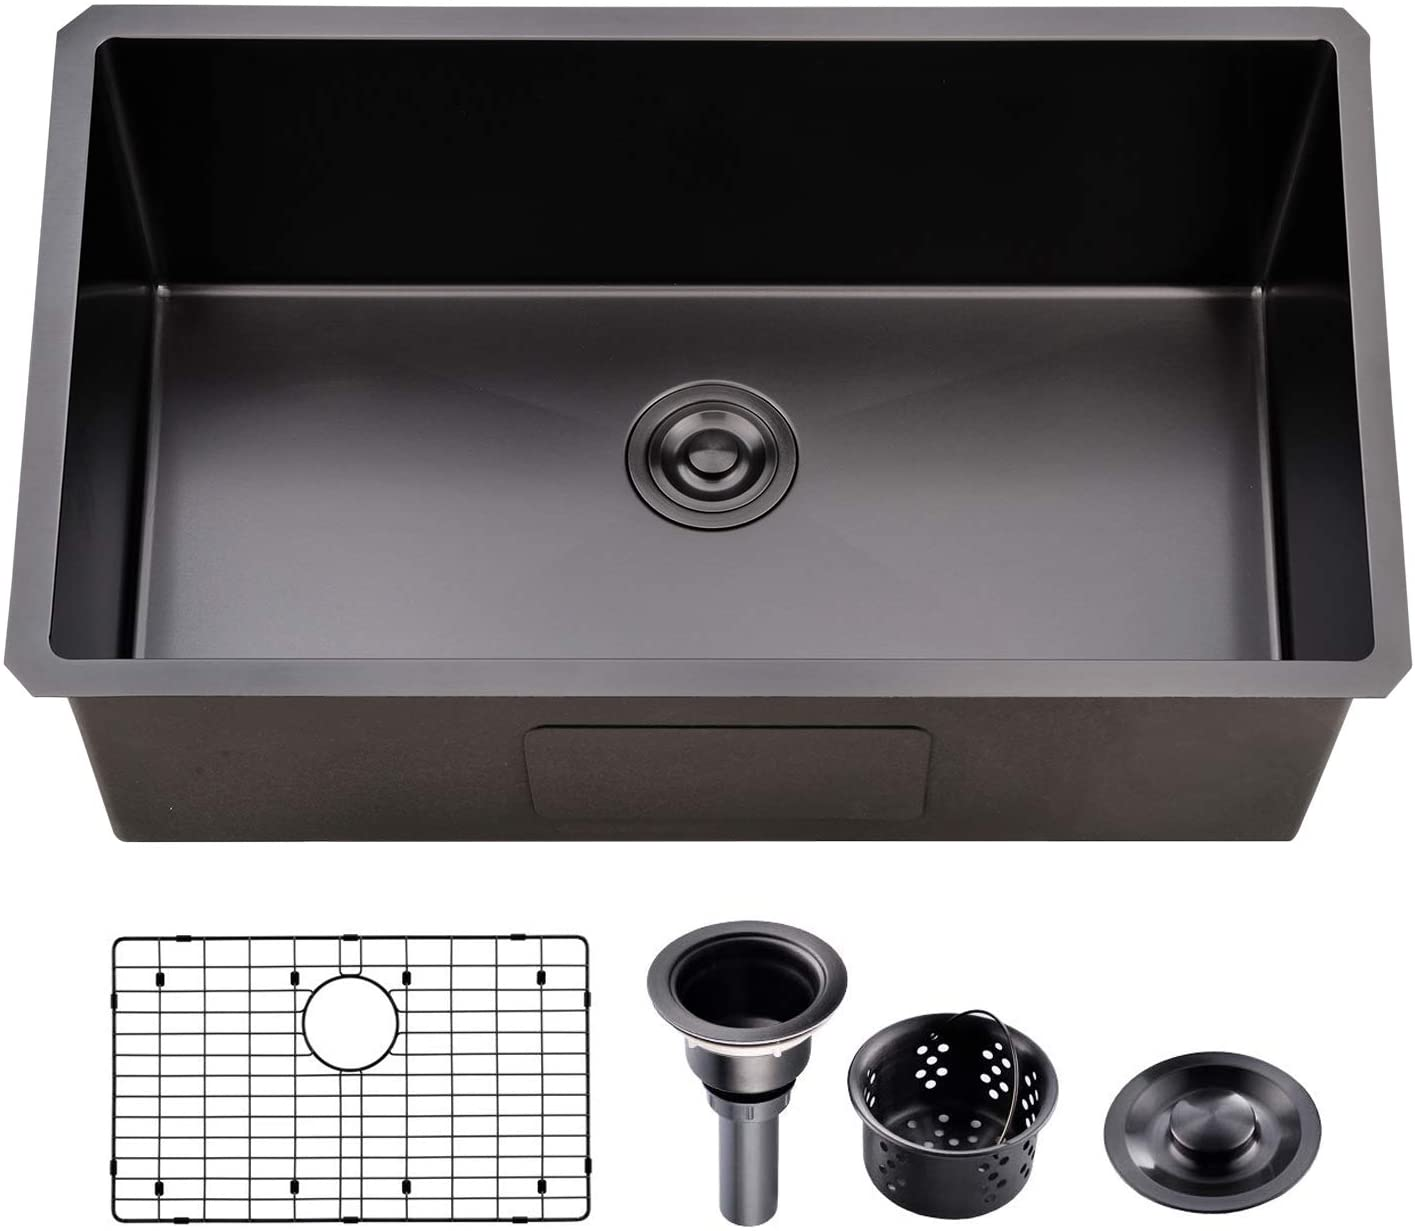 Ufaucet Commercial 32 Inch Extremely Durable Dark Grey Black Nano Titanium Plating T304 Stainless Steel Kitchen Sink,16 Gauge Undermount Single Bowl Handmade R10 Kitchen Sinks Includes Drain and Grid